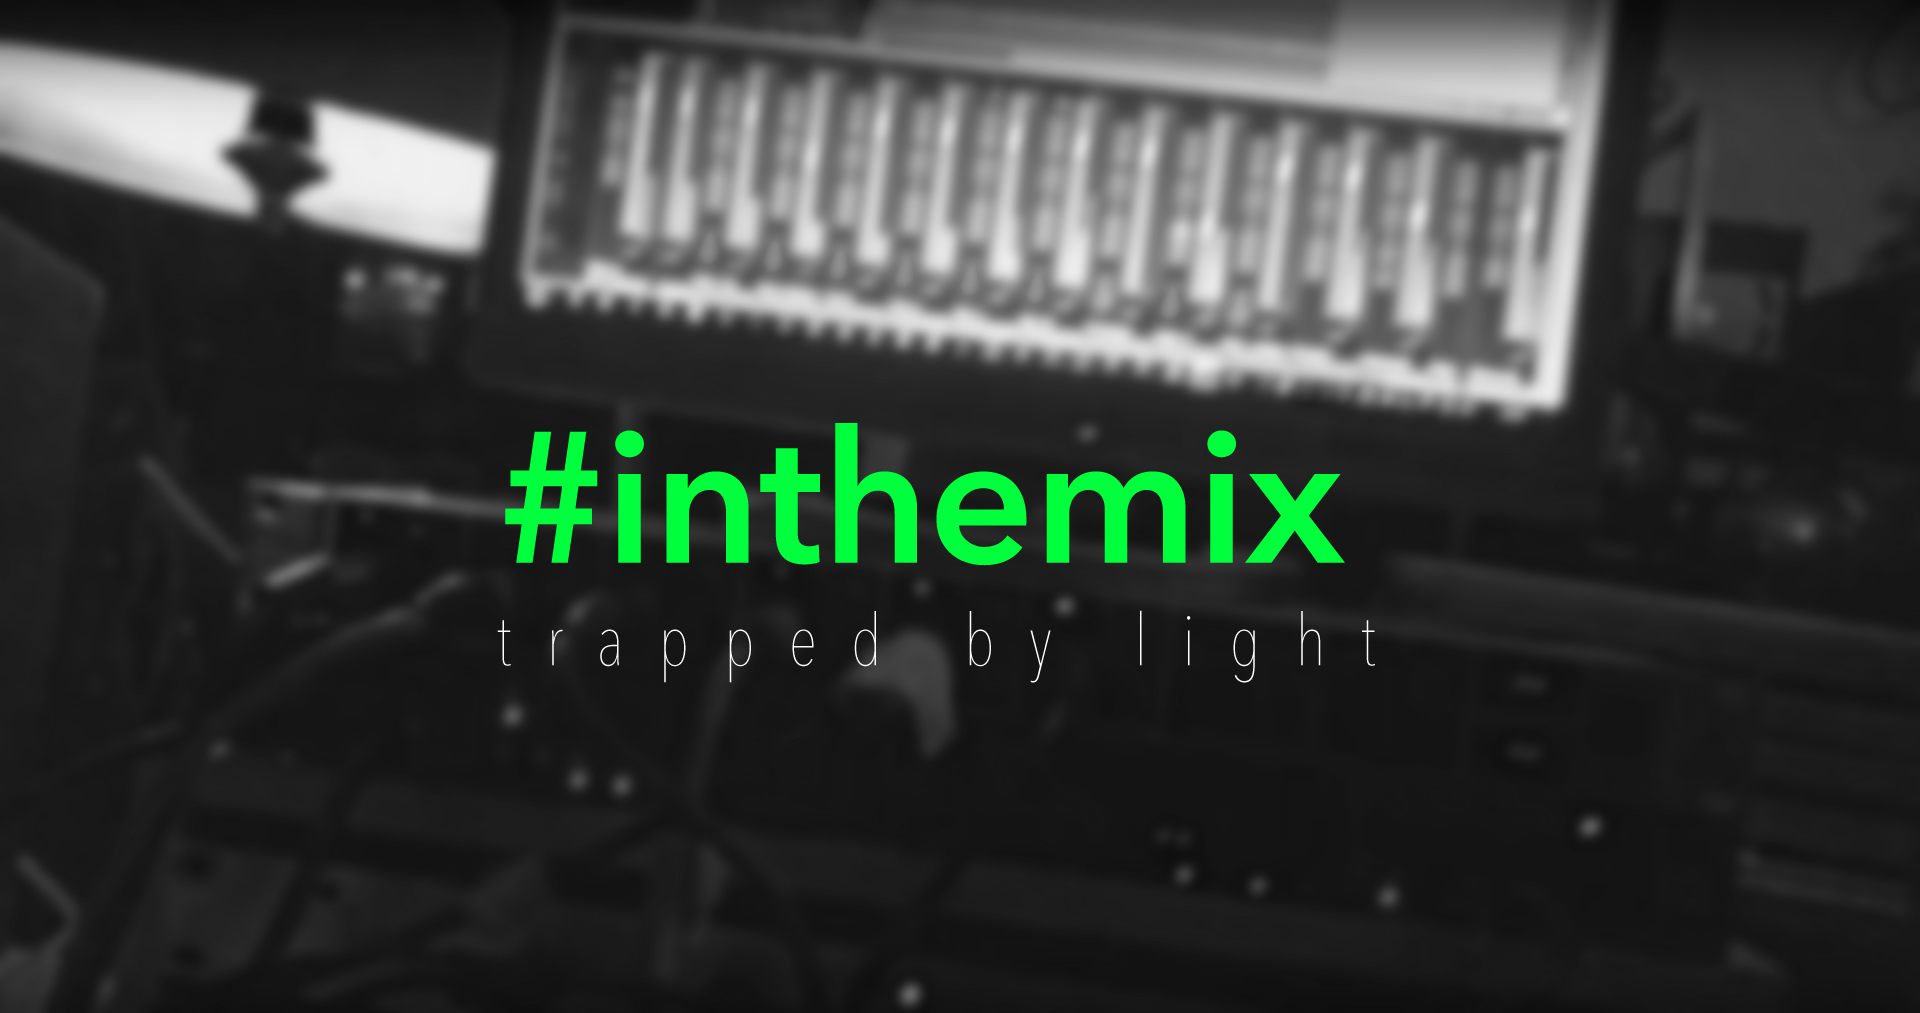 Trapped by light – Drums in the mix